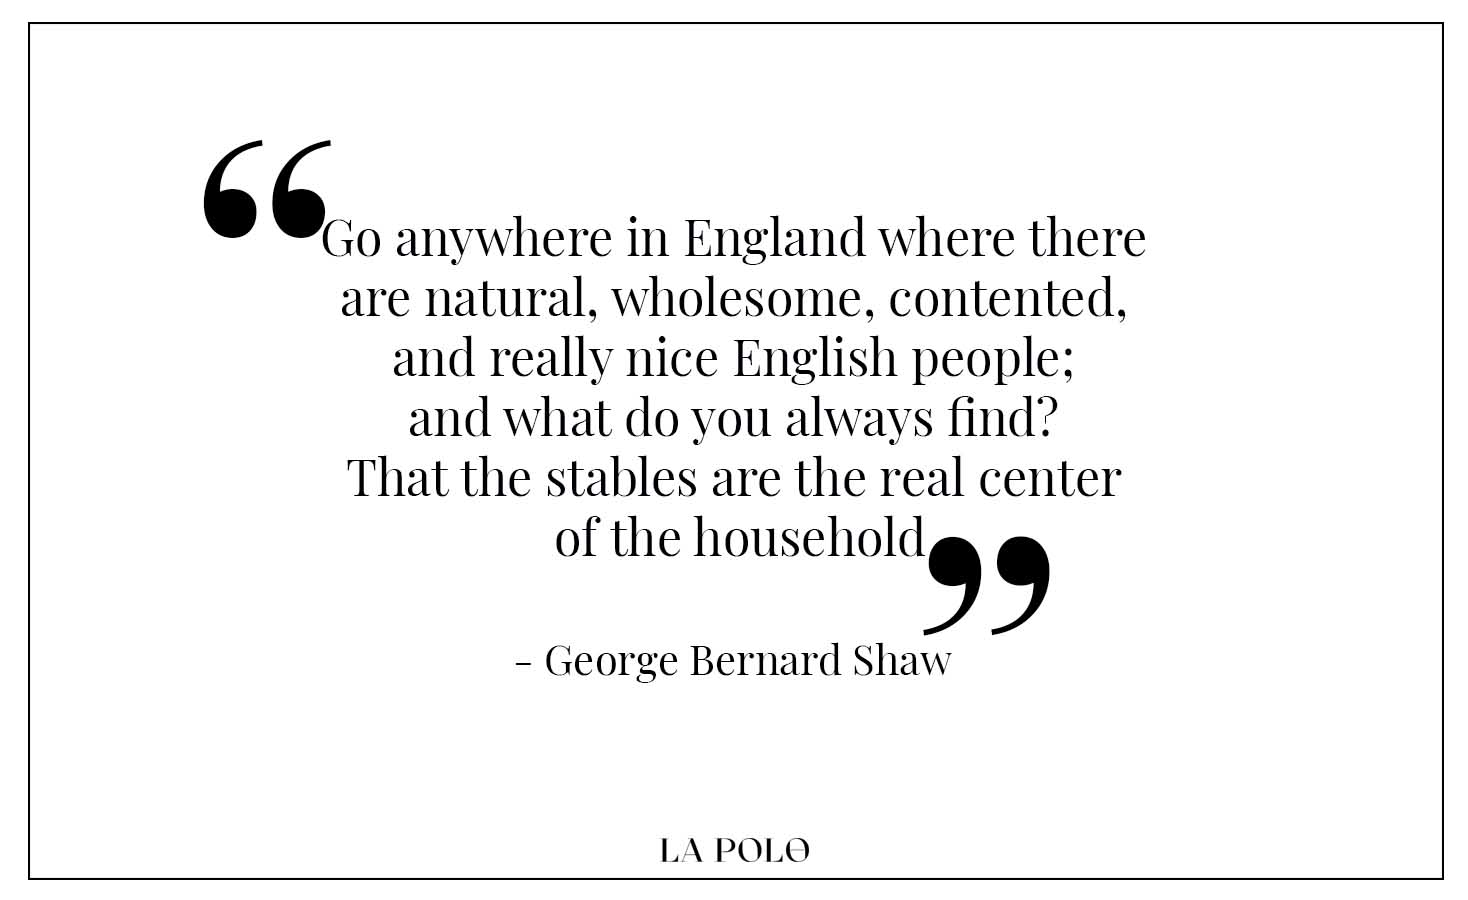 George Bernard Shaw quotes